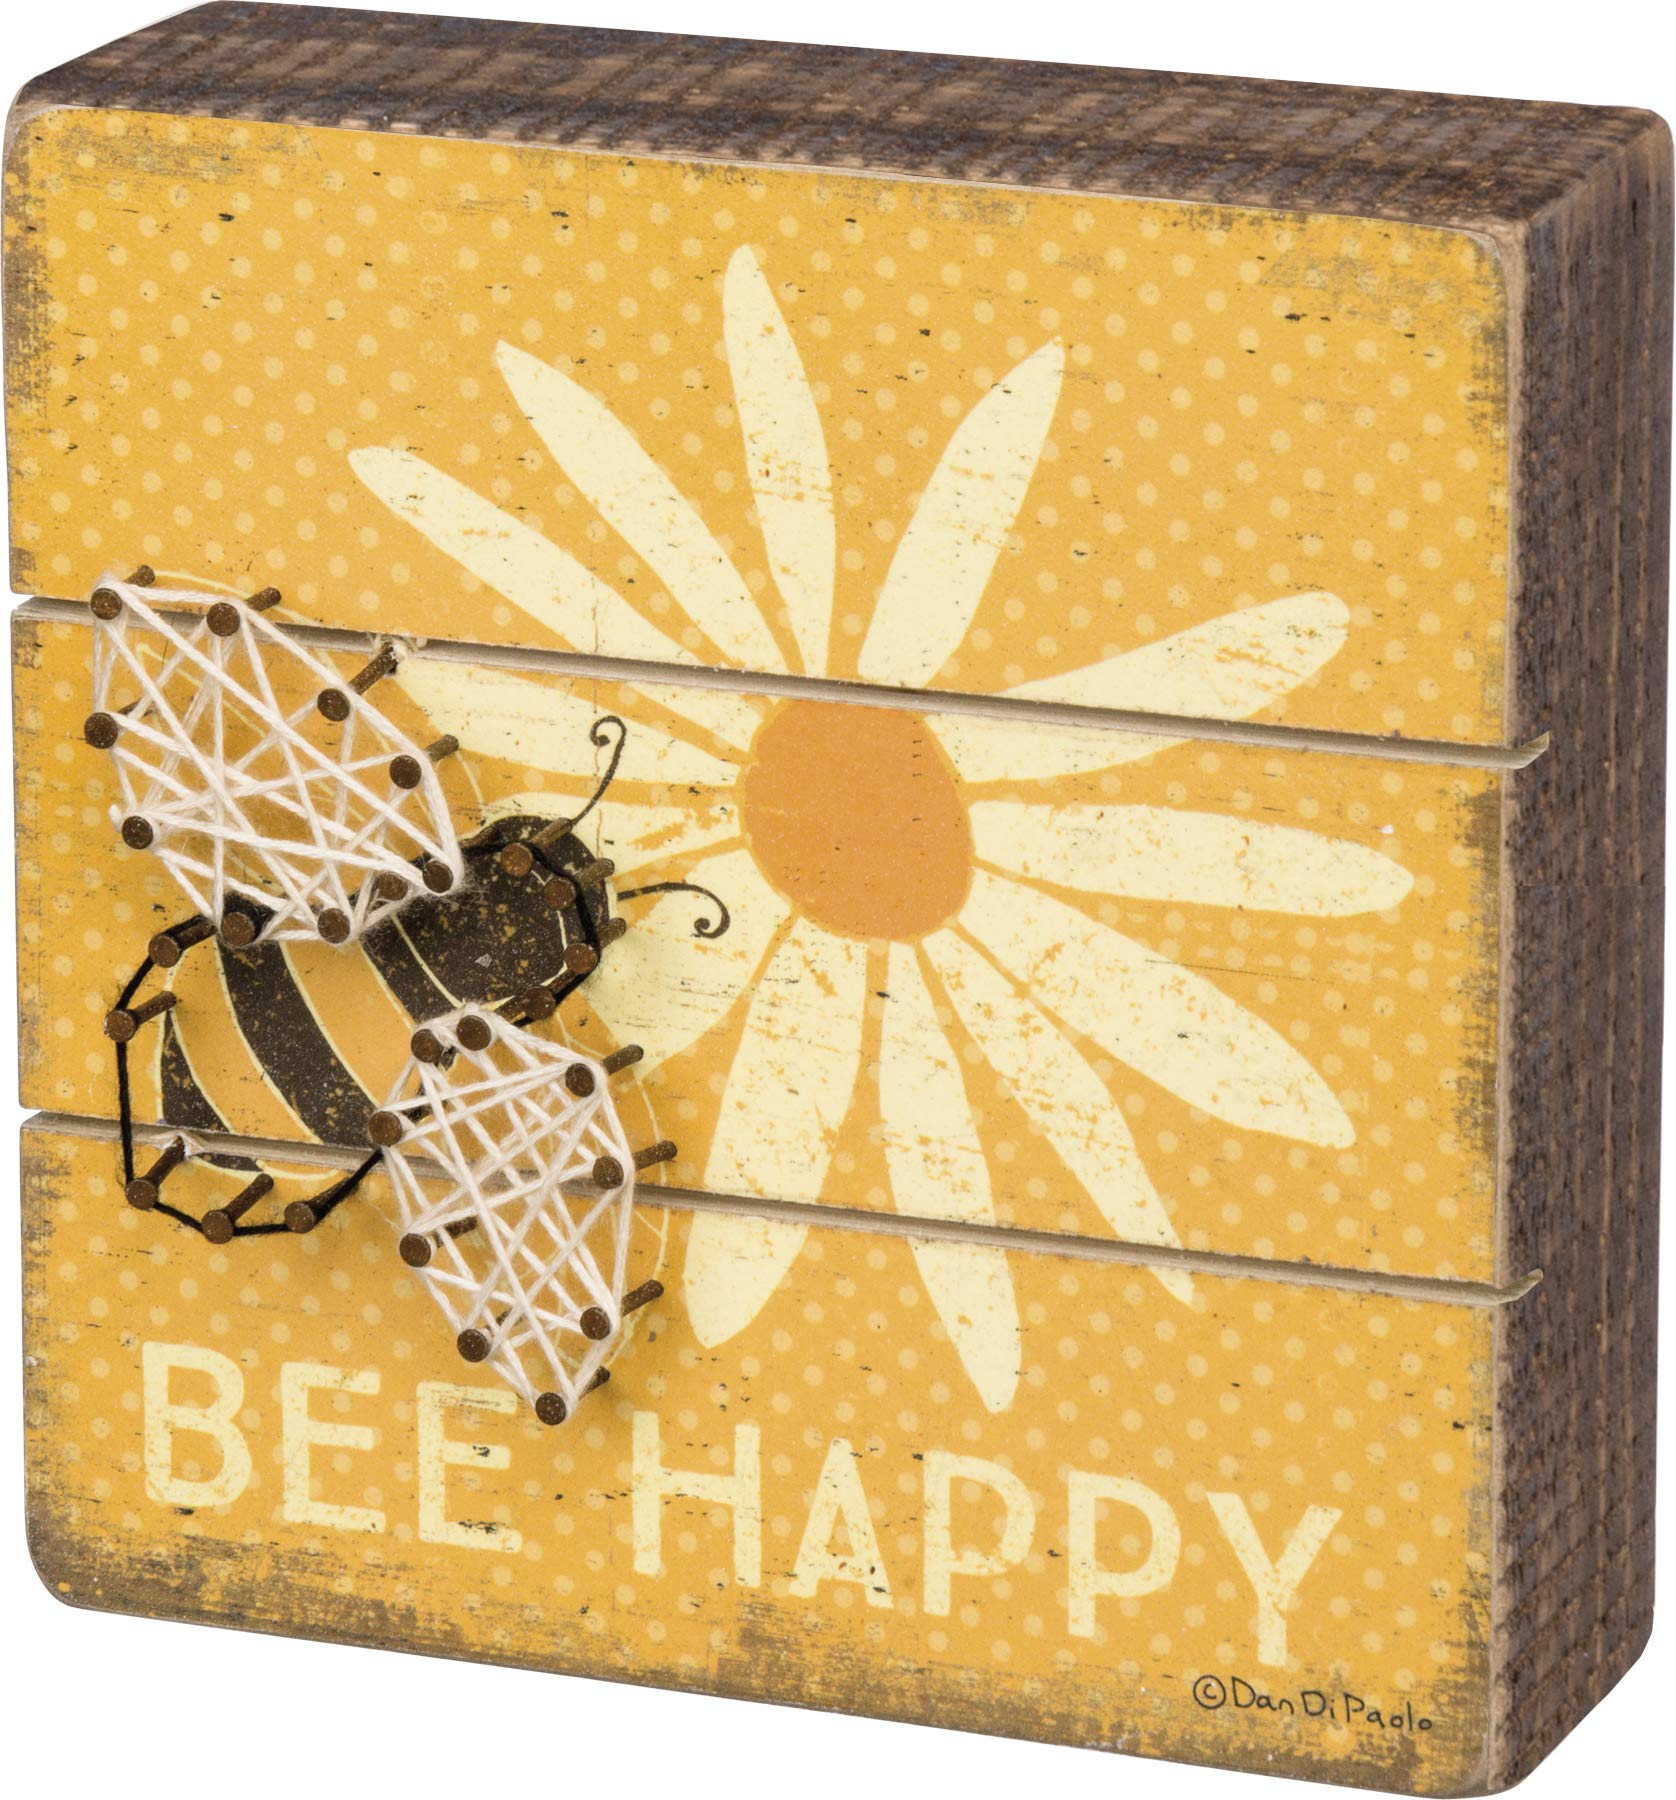 """Primitives by Kathy Slat String Art Box Sign, 6"""" x 6"""", Bee Happy"" (35313)"